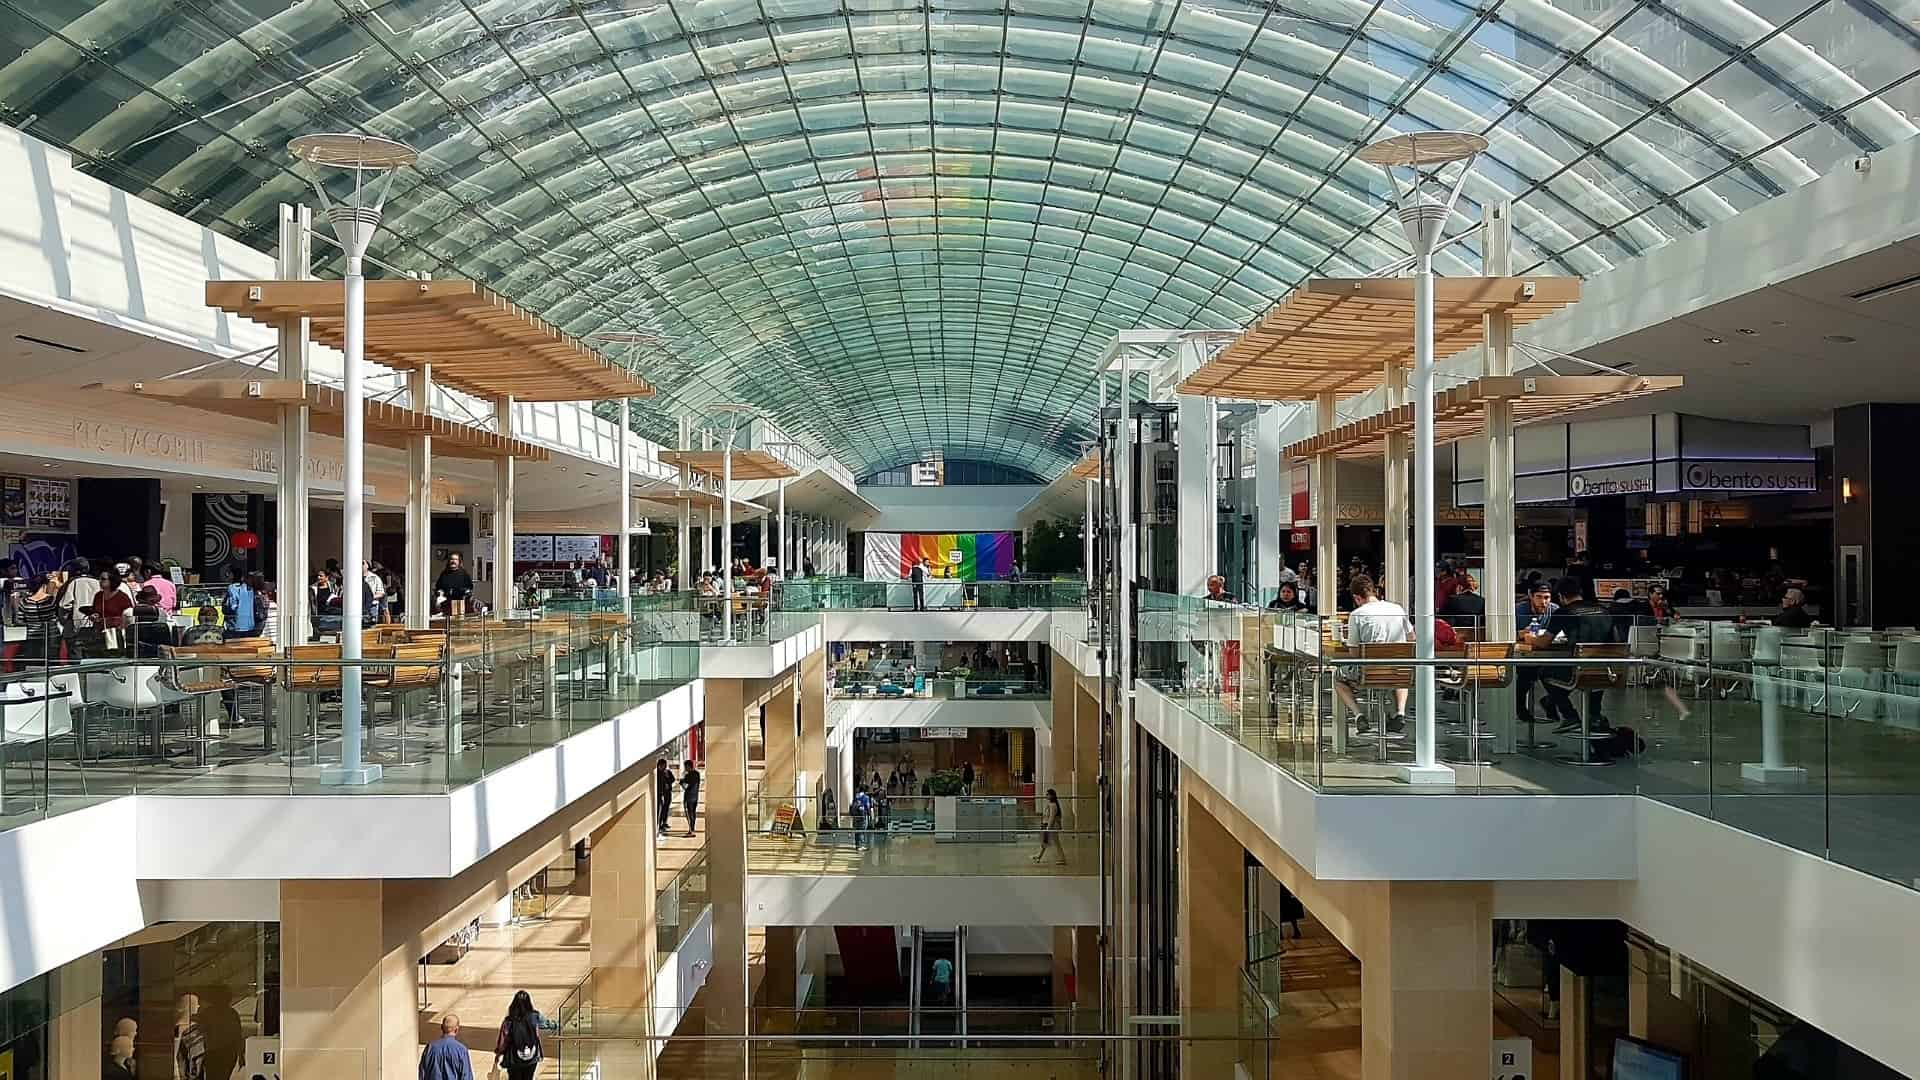 The CORE Shopping Centre